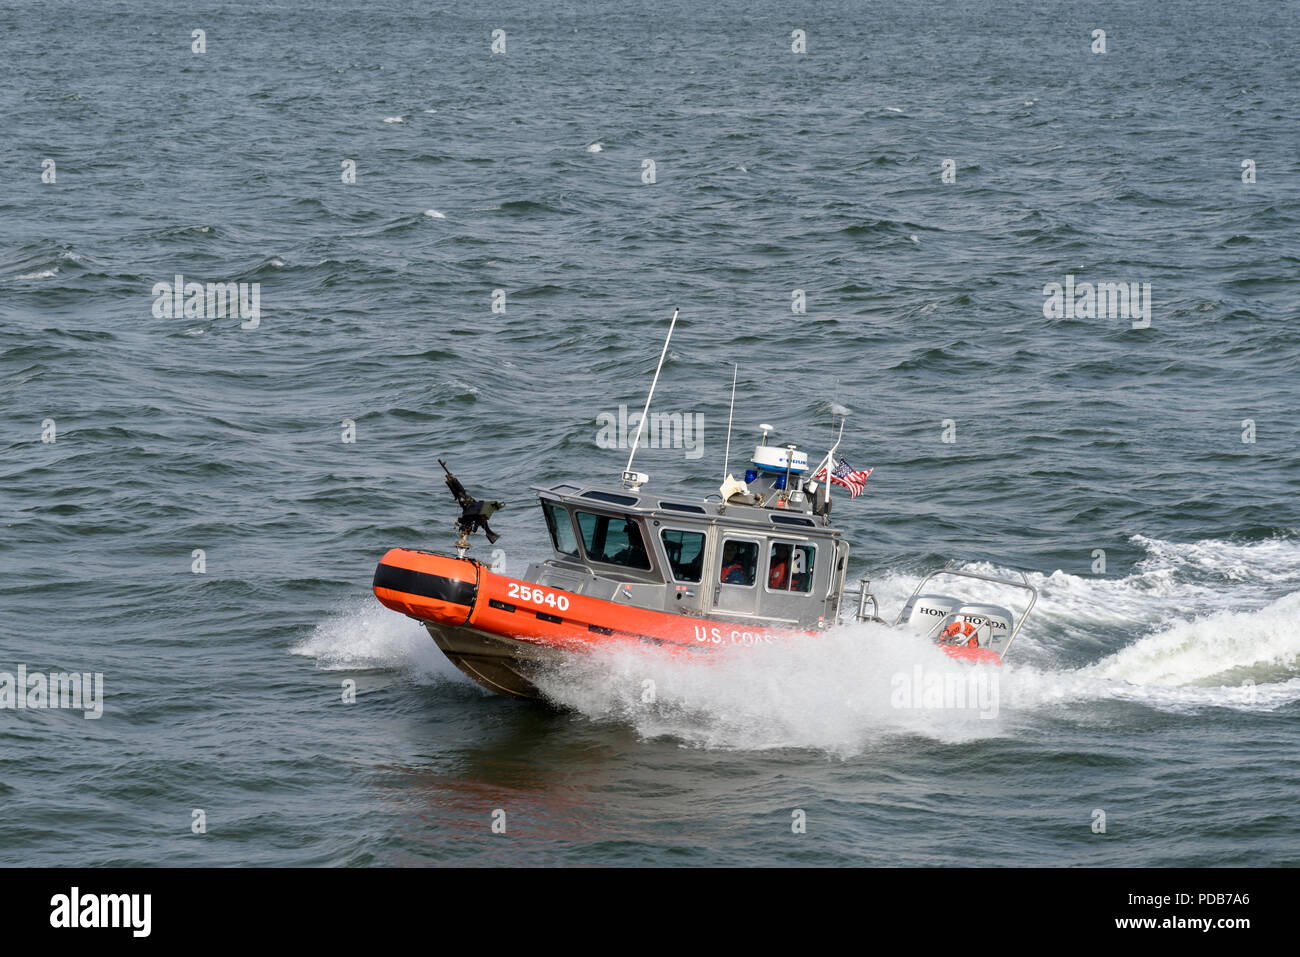 29-10-15, New York, USA. US Coastguard boat alongside the Staten Island ferry.Photo: © Simon Grosset - Stock Image